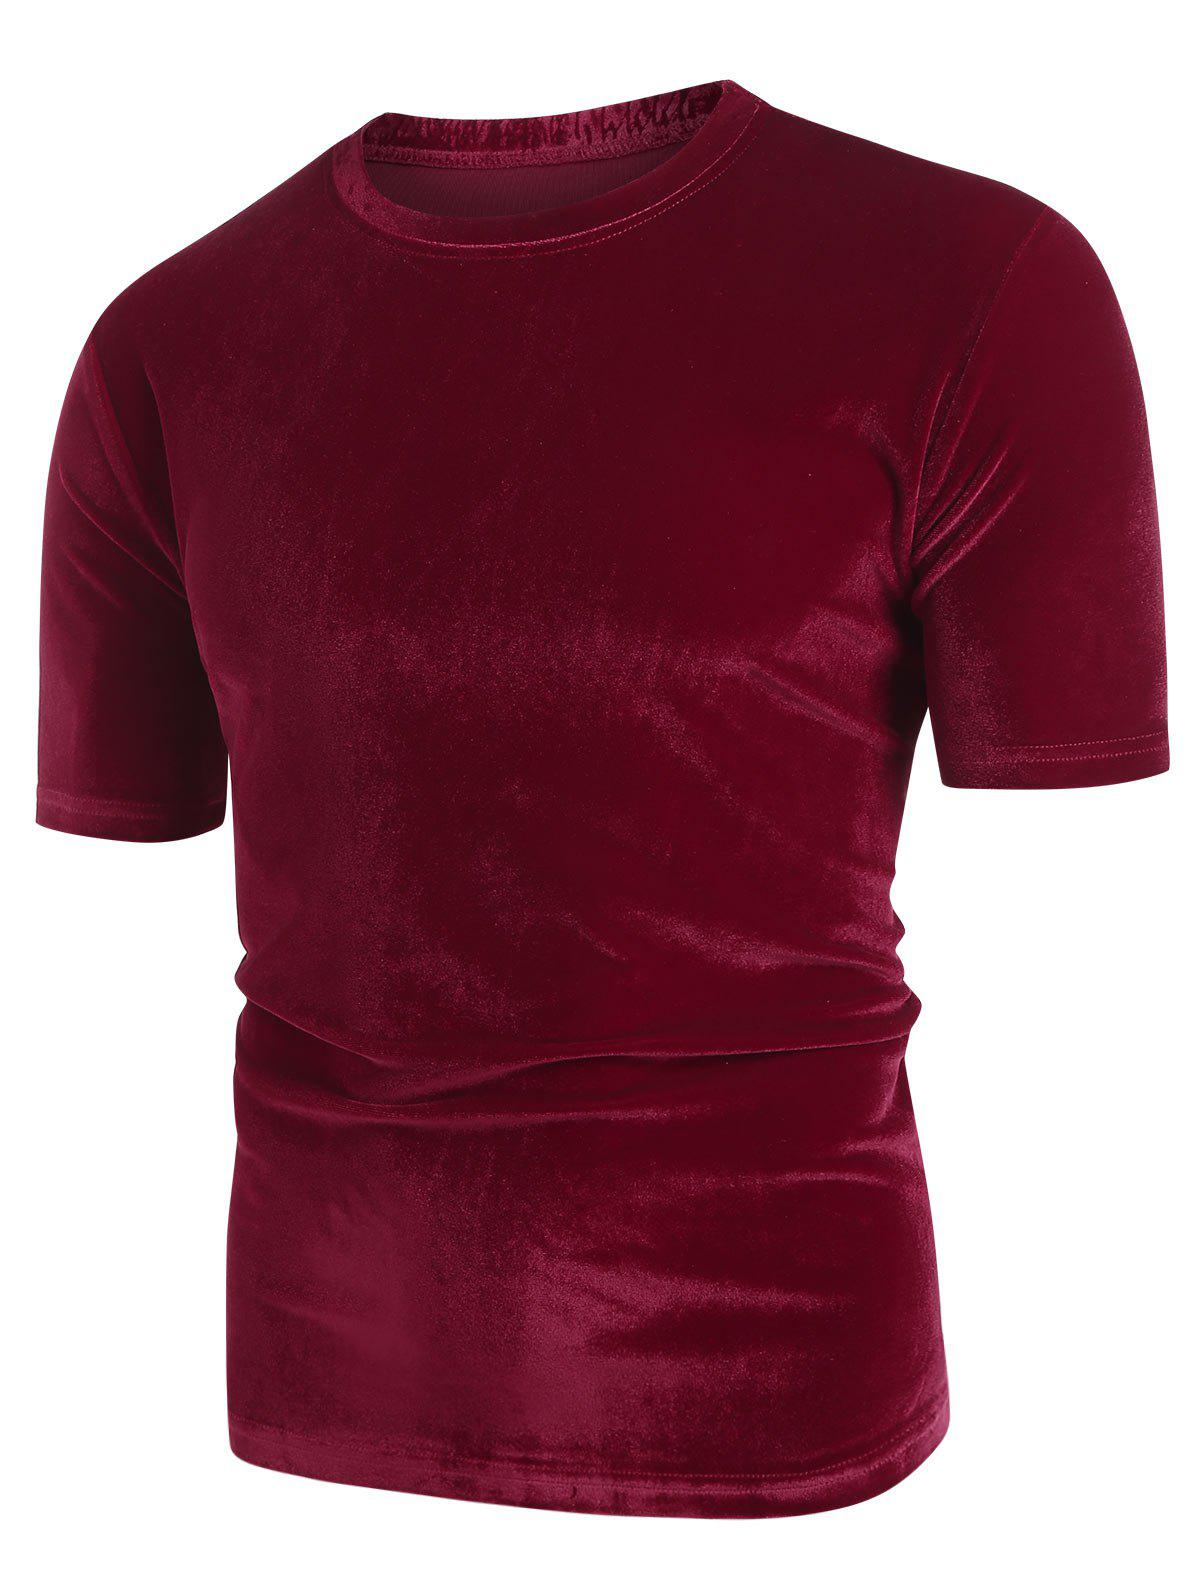 Shops Solid Color Round Neck Short Sleeves T-shirt